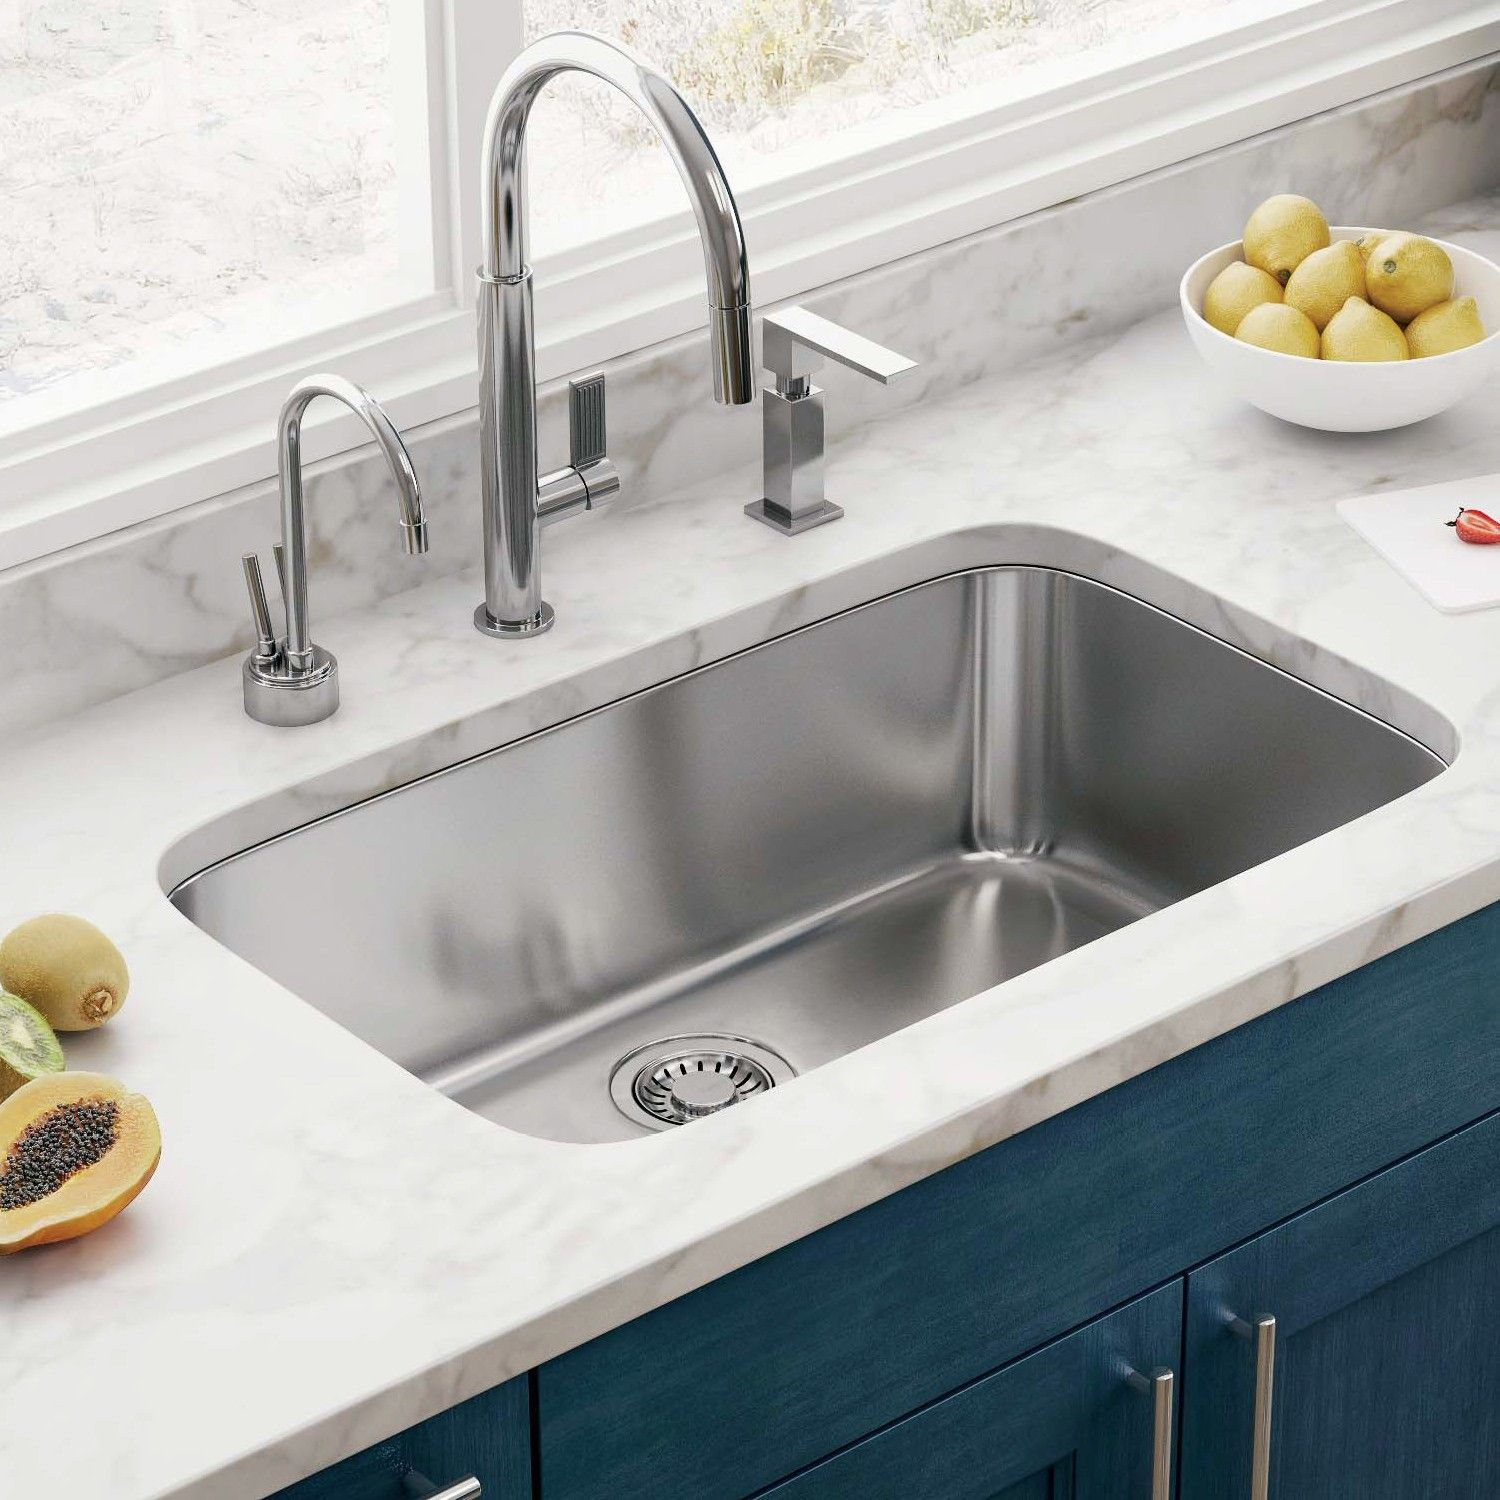 pin by ybath on modern kitchen sinks in 2019 kitchen sink rh pinterest com